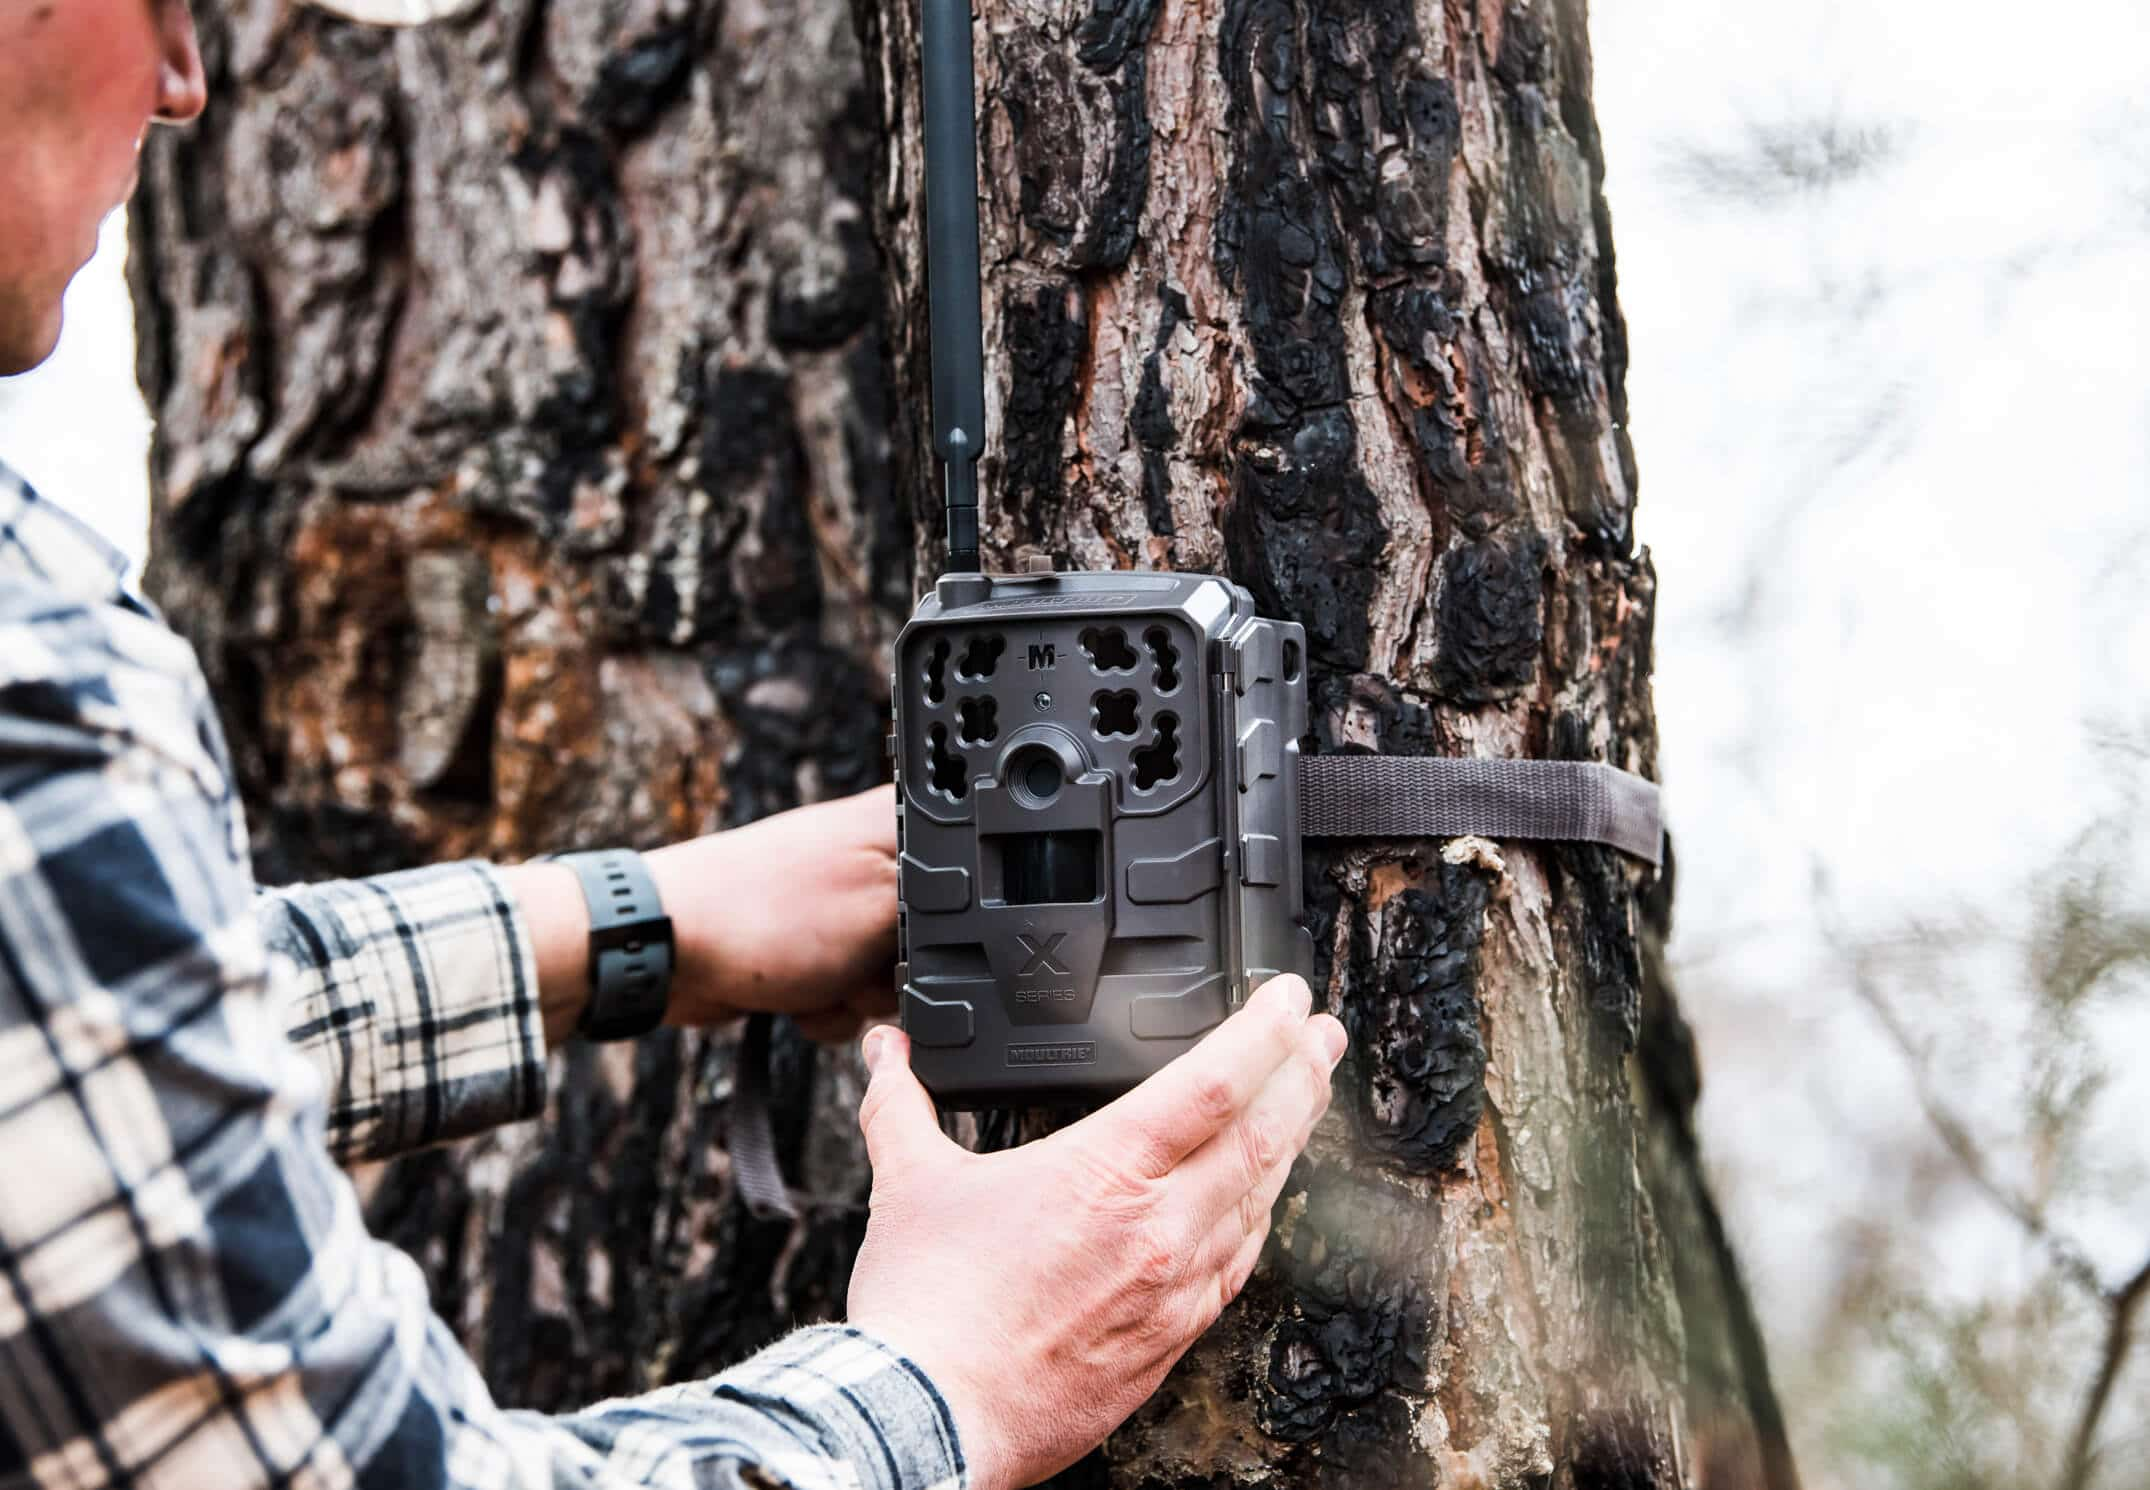 Man strapping cellular trail camera to tree